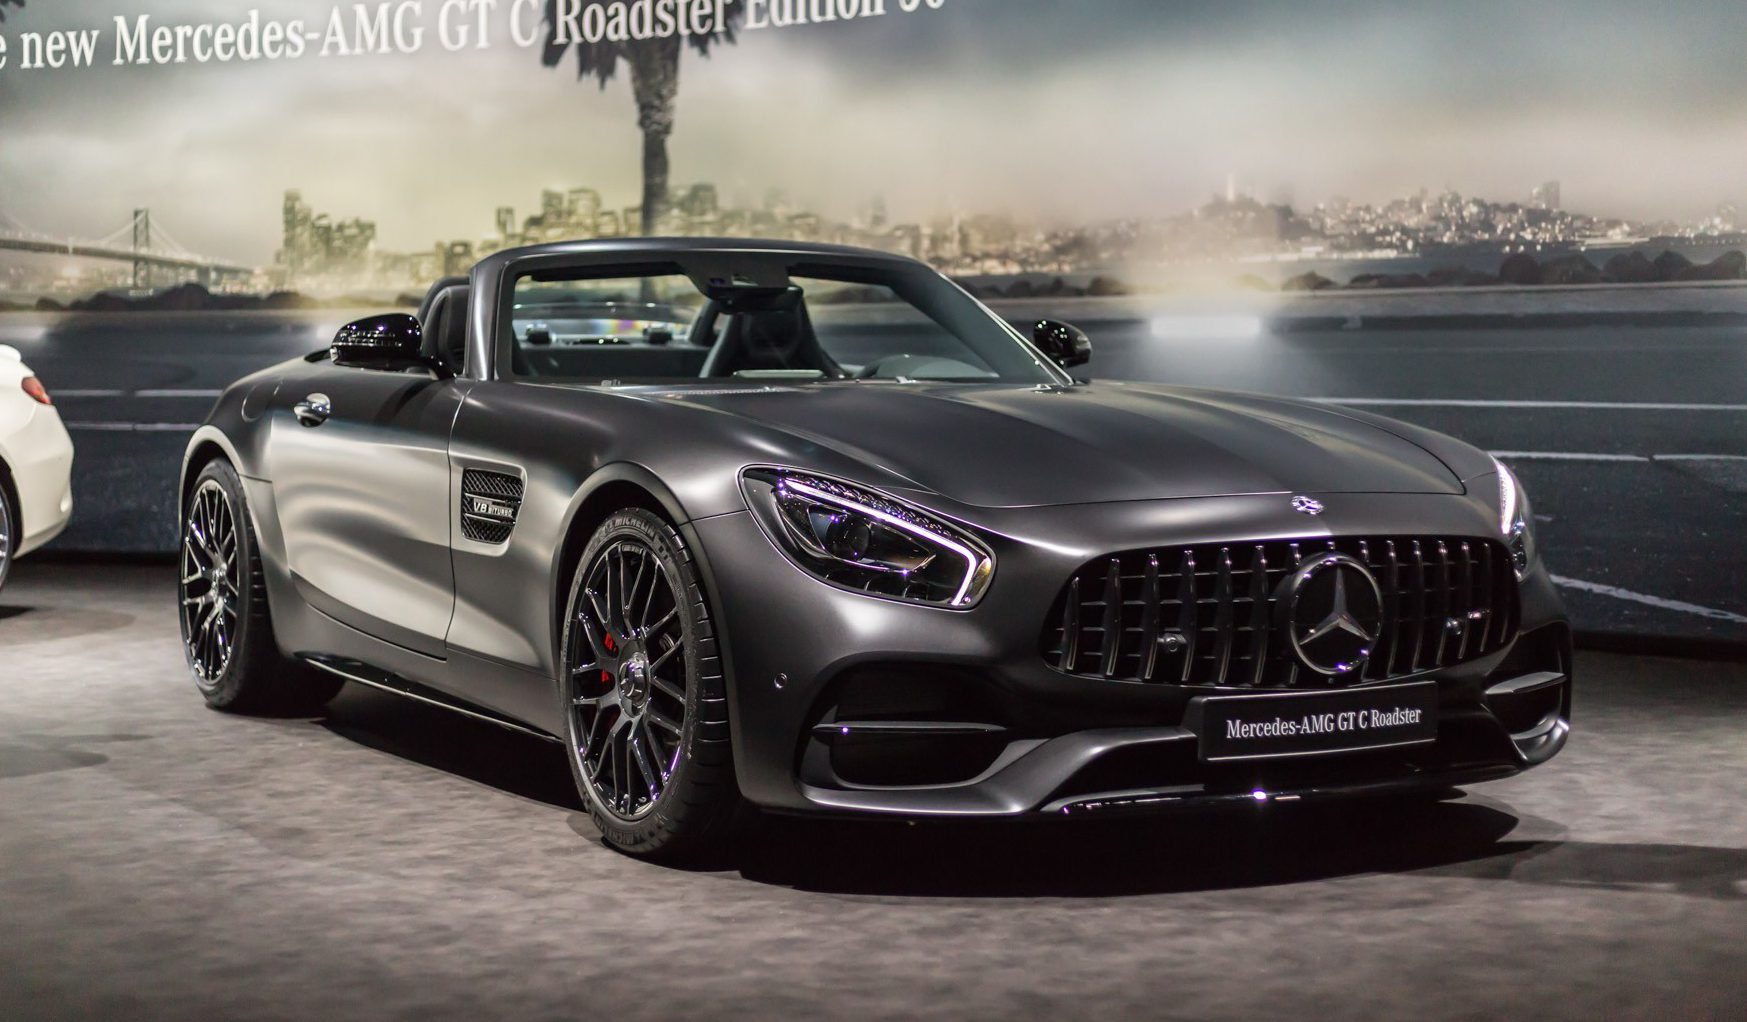 Mercedes Benz Amg Gt C Roadster Edition 50